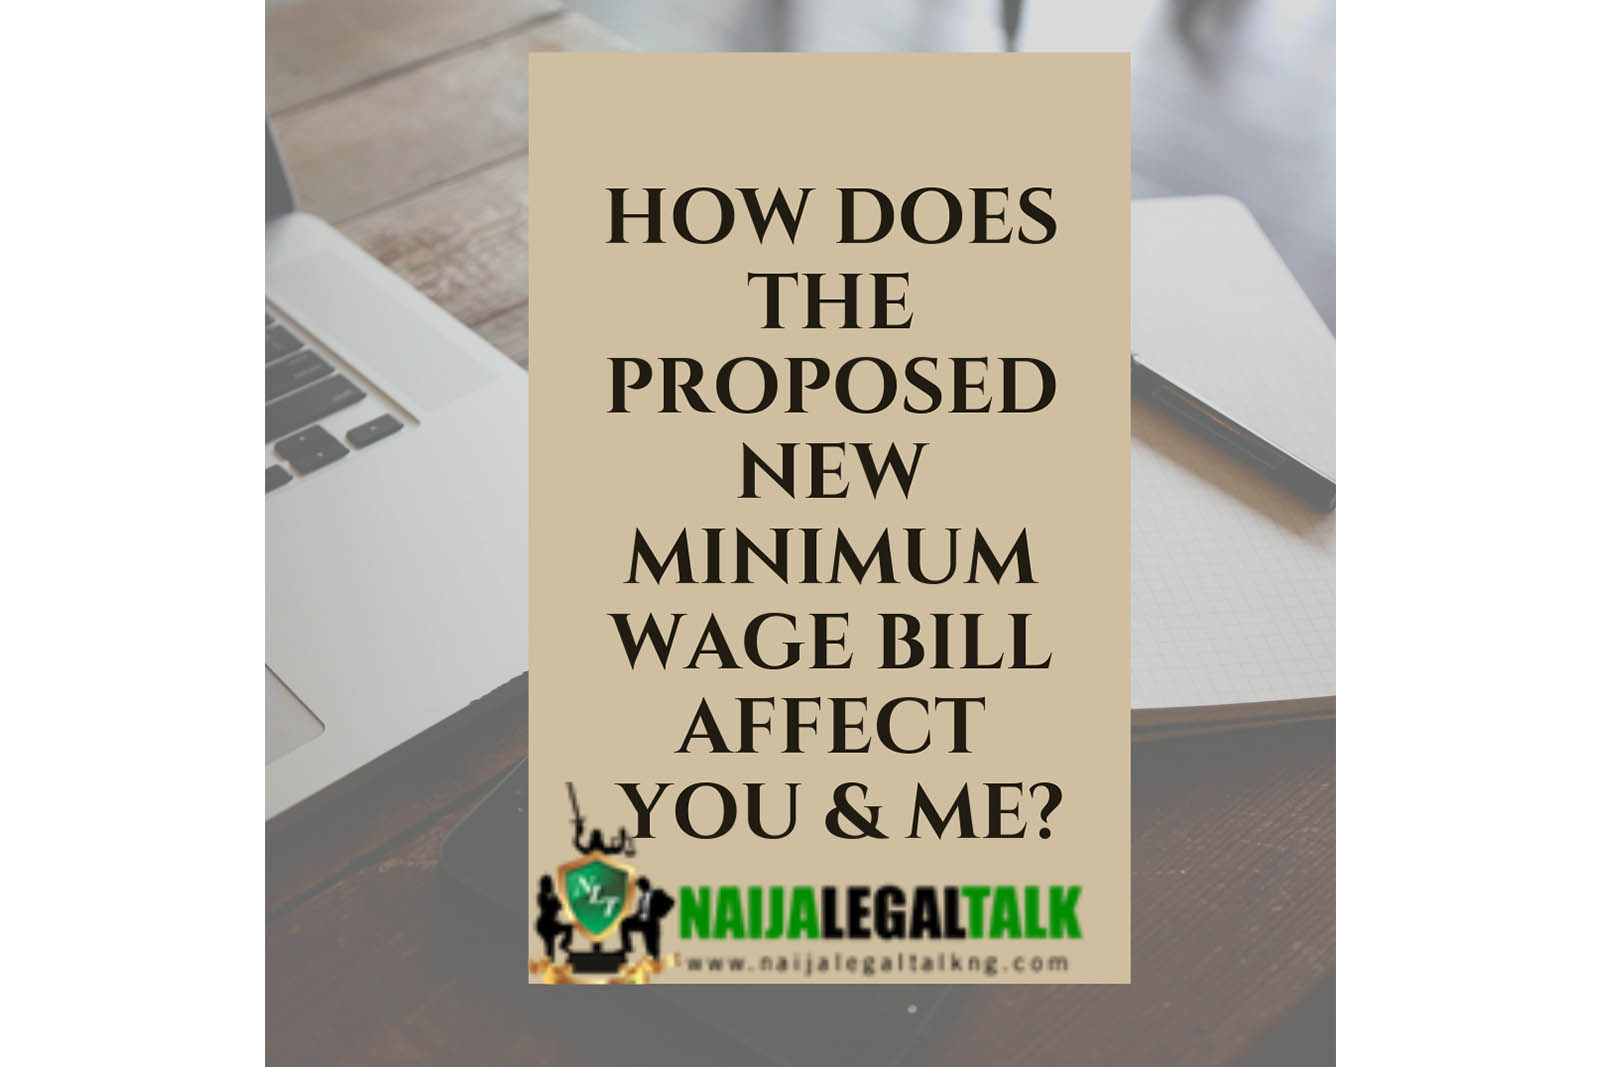 HOW DOES THE PROPOSED NEW MINIMUM WAGE BILL AFFECT YOU & ME?